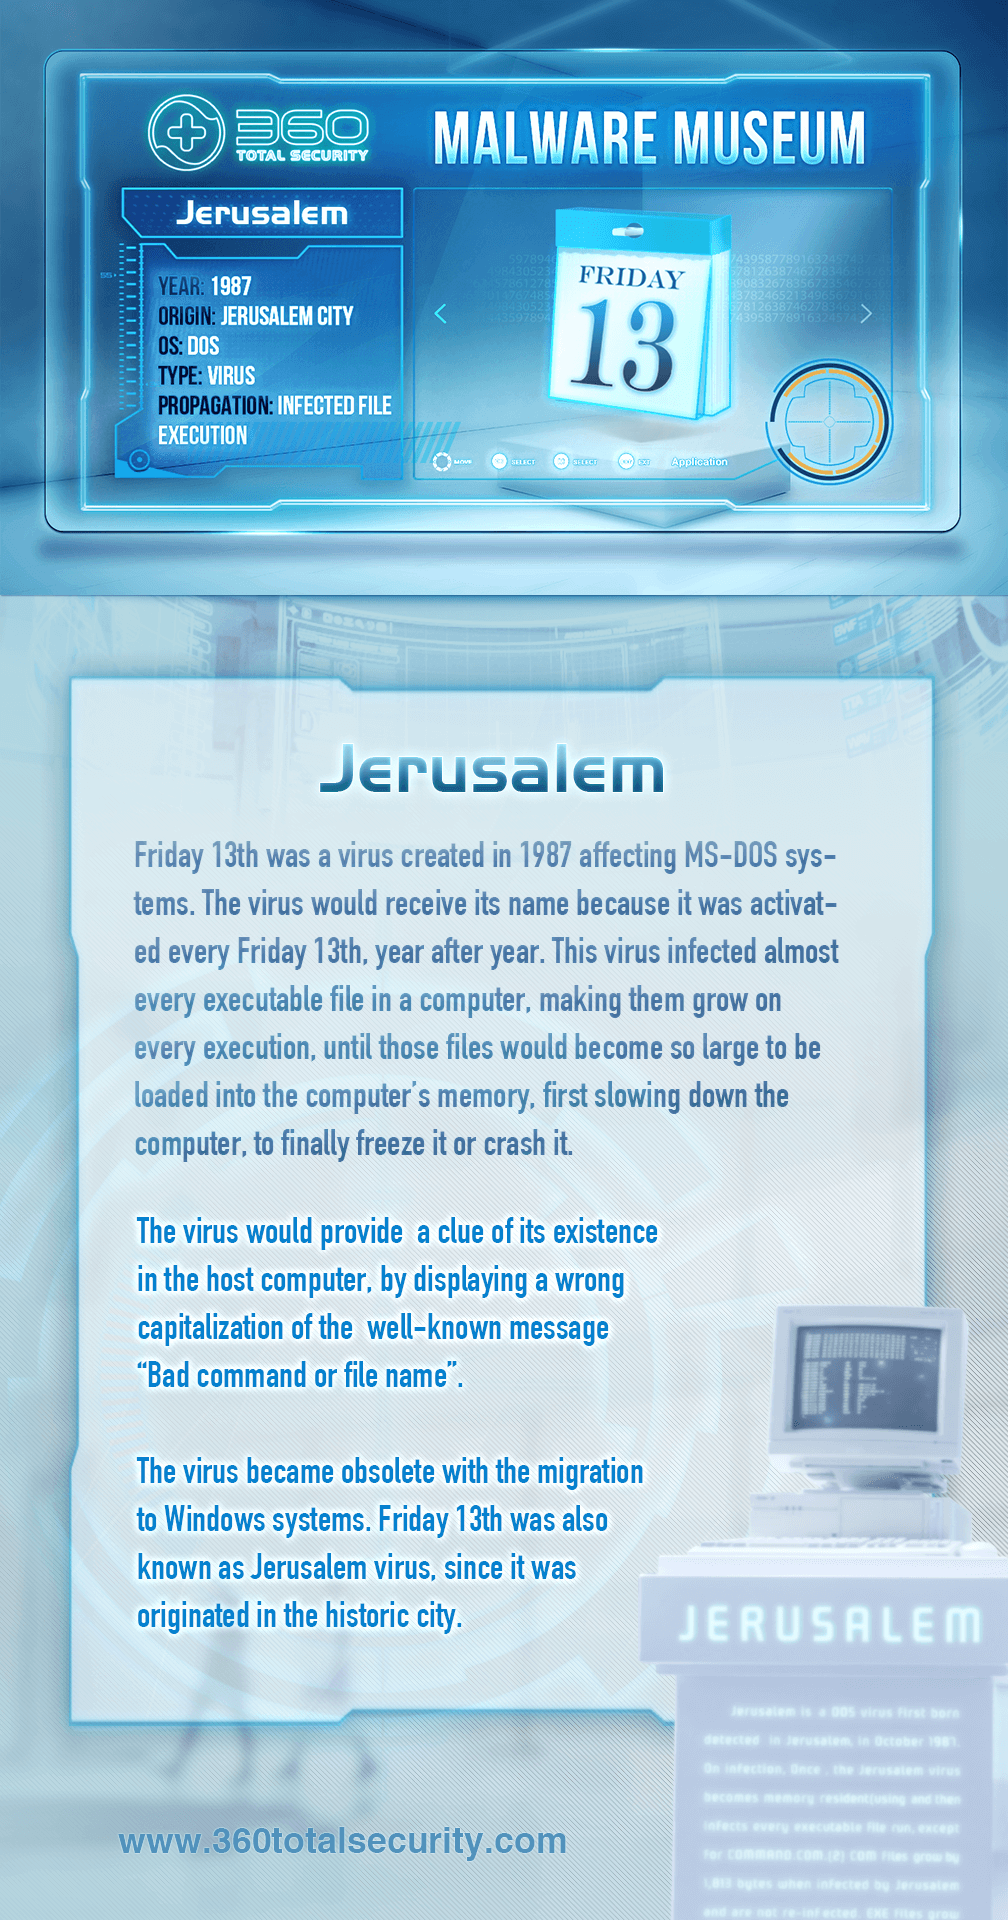 Jerusalem - The virus created on Friday, 13th